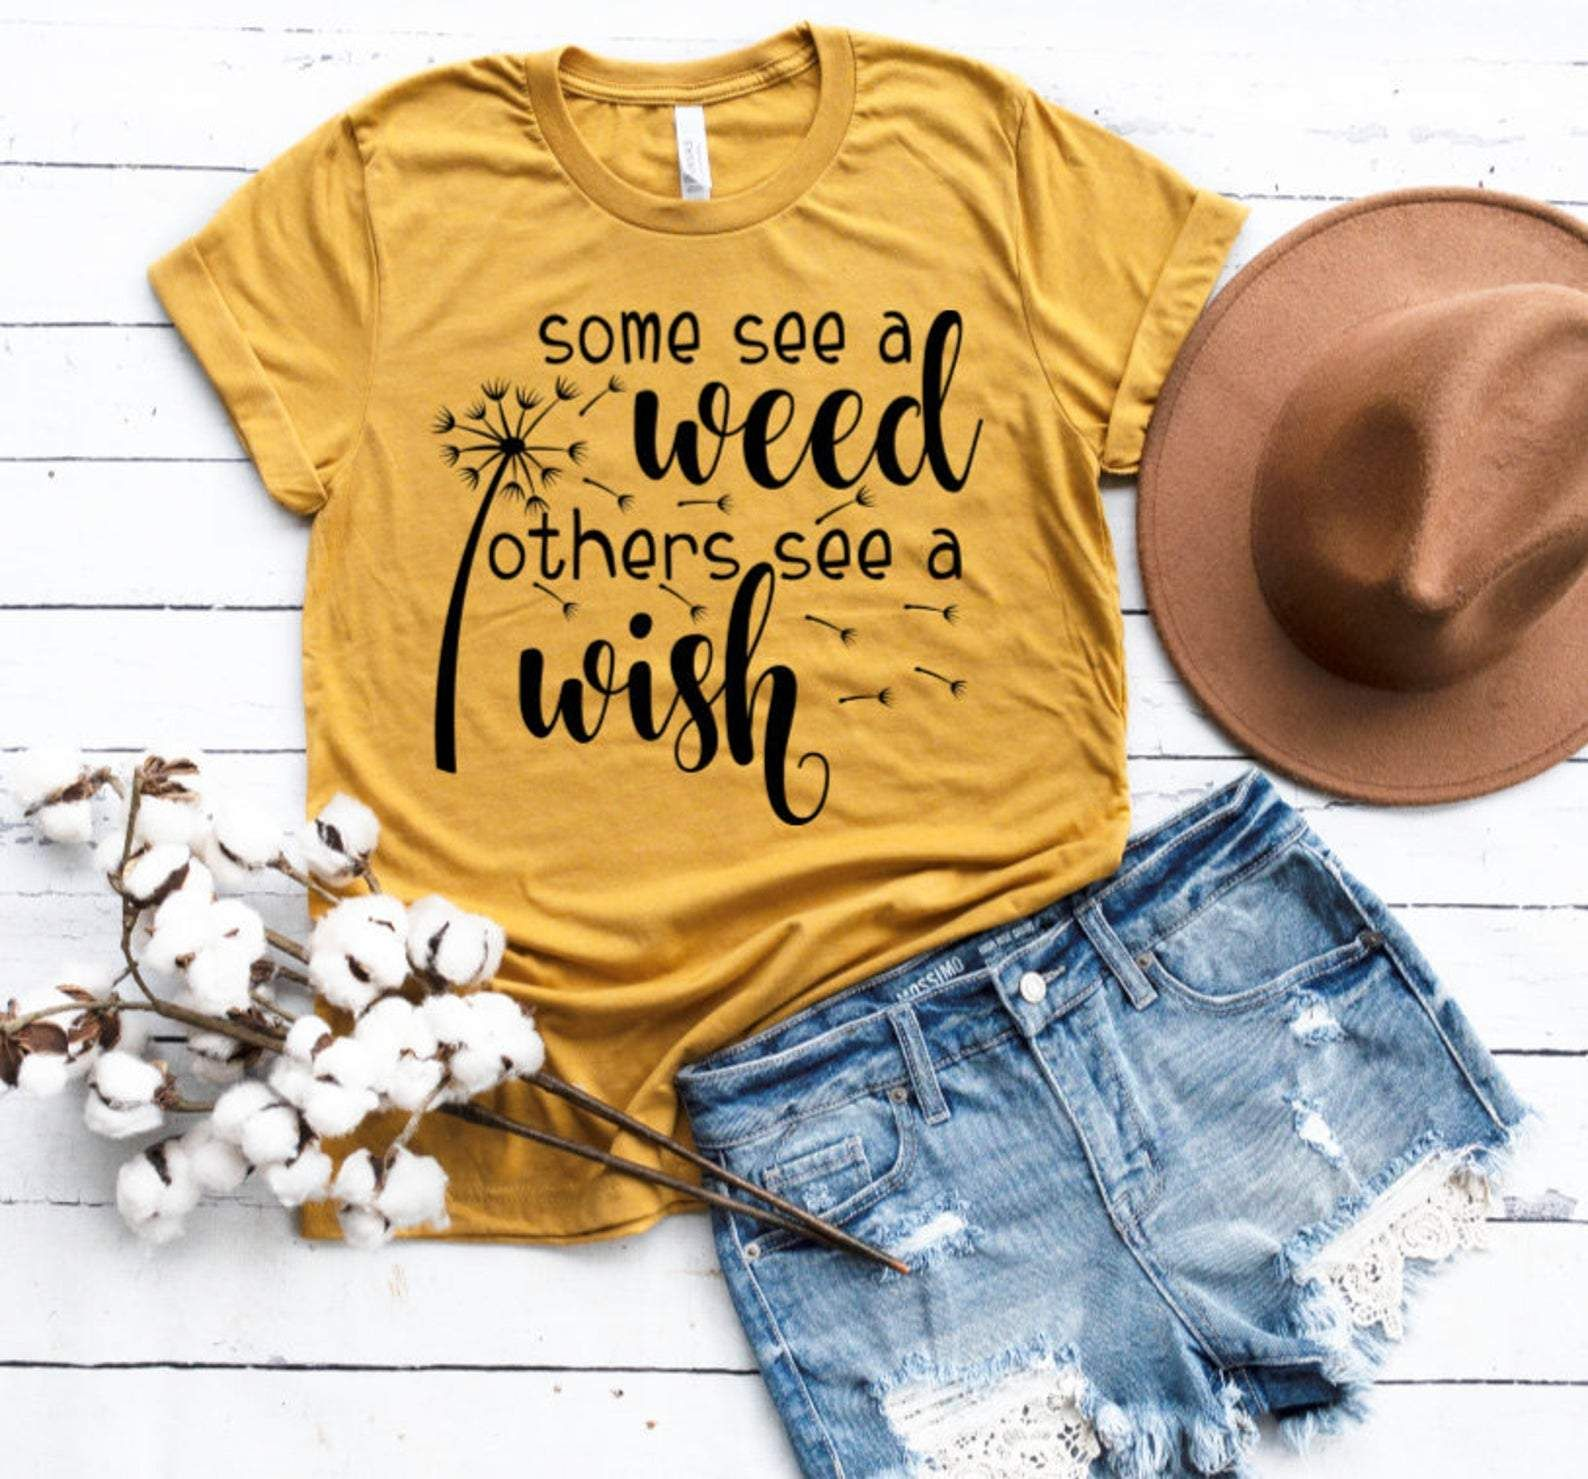 Some See A Weed others See a Wish Dandelion Adult Tee - 2XL